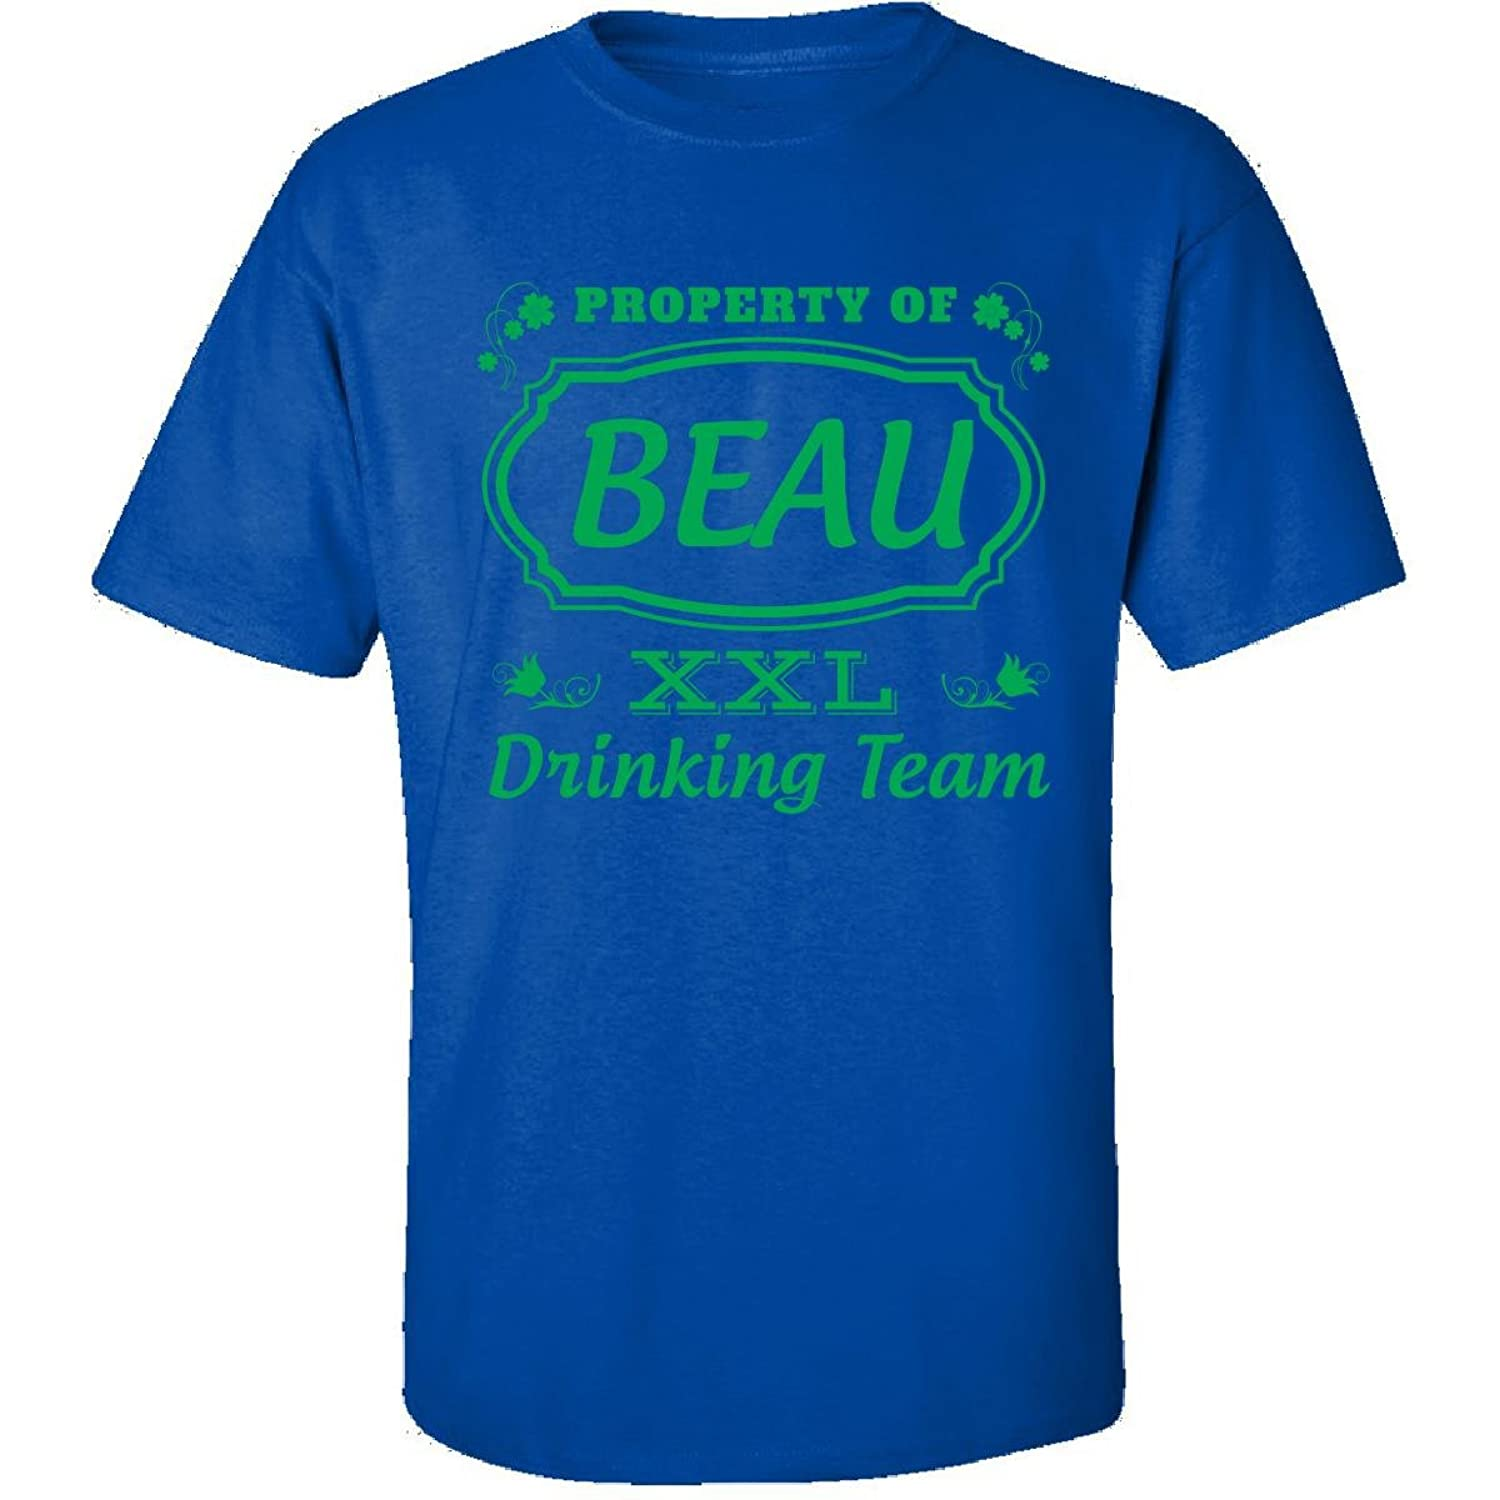 Property Of Beau St Patrick Day Beer Drinking Team - Adult Shirt